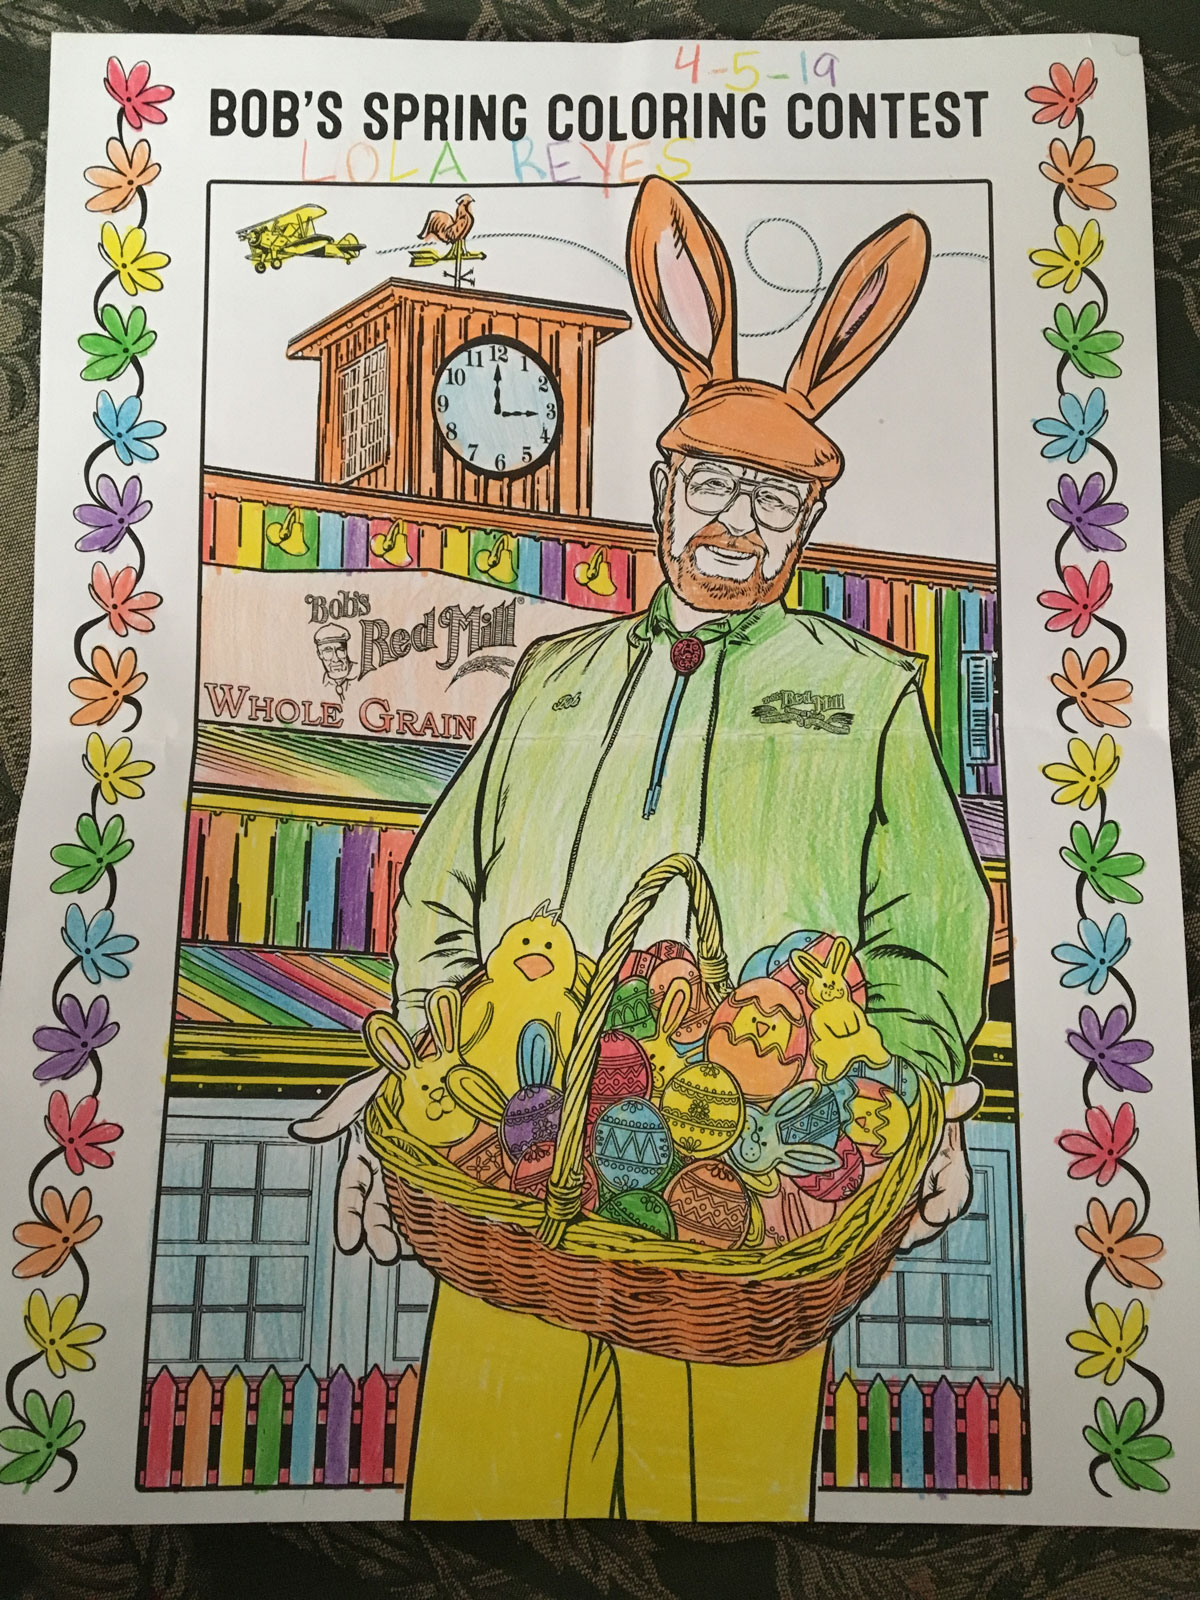 8 Spring Coloring Contest